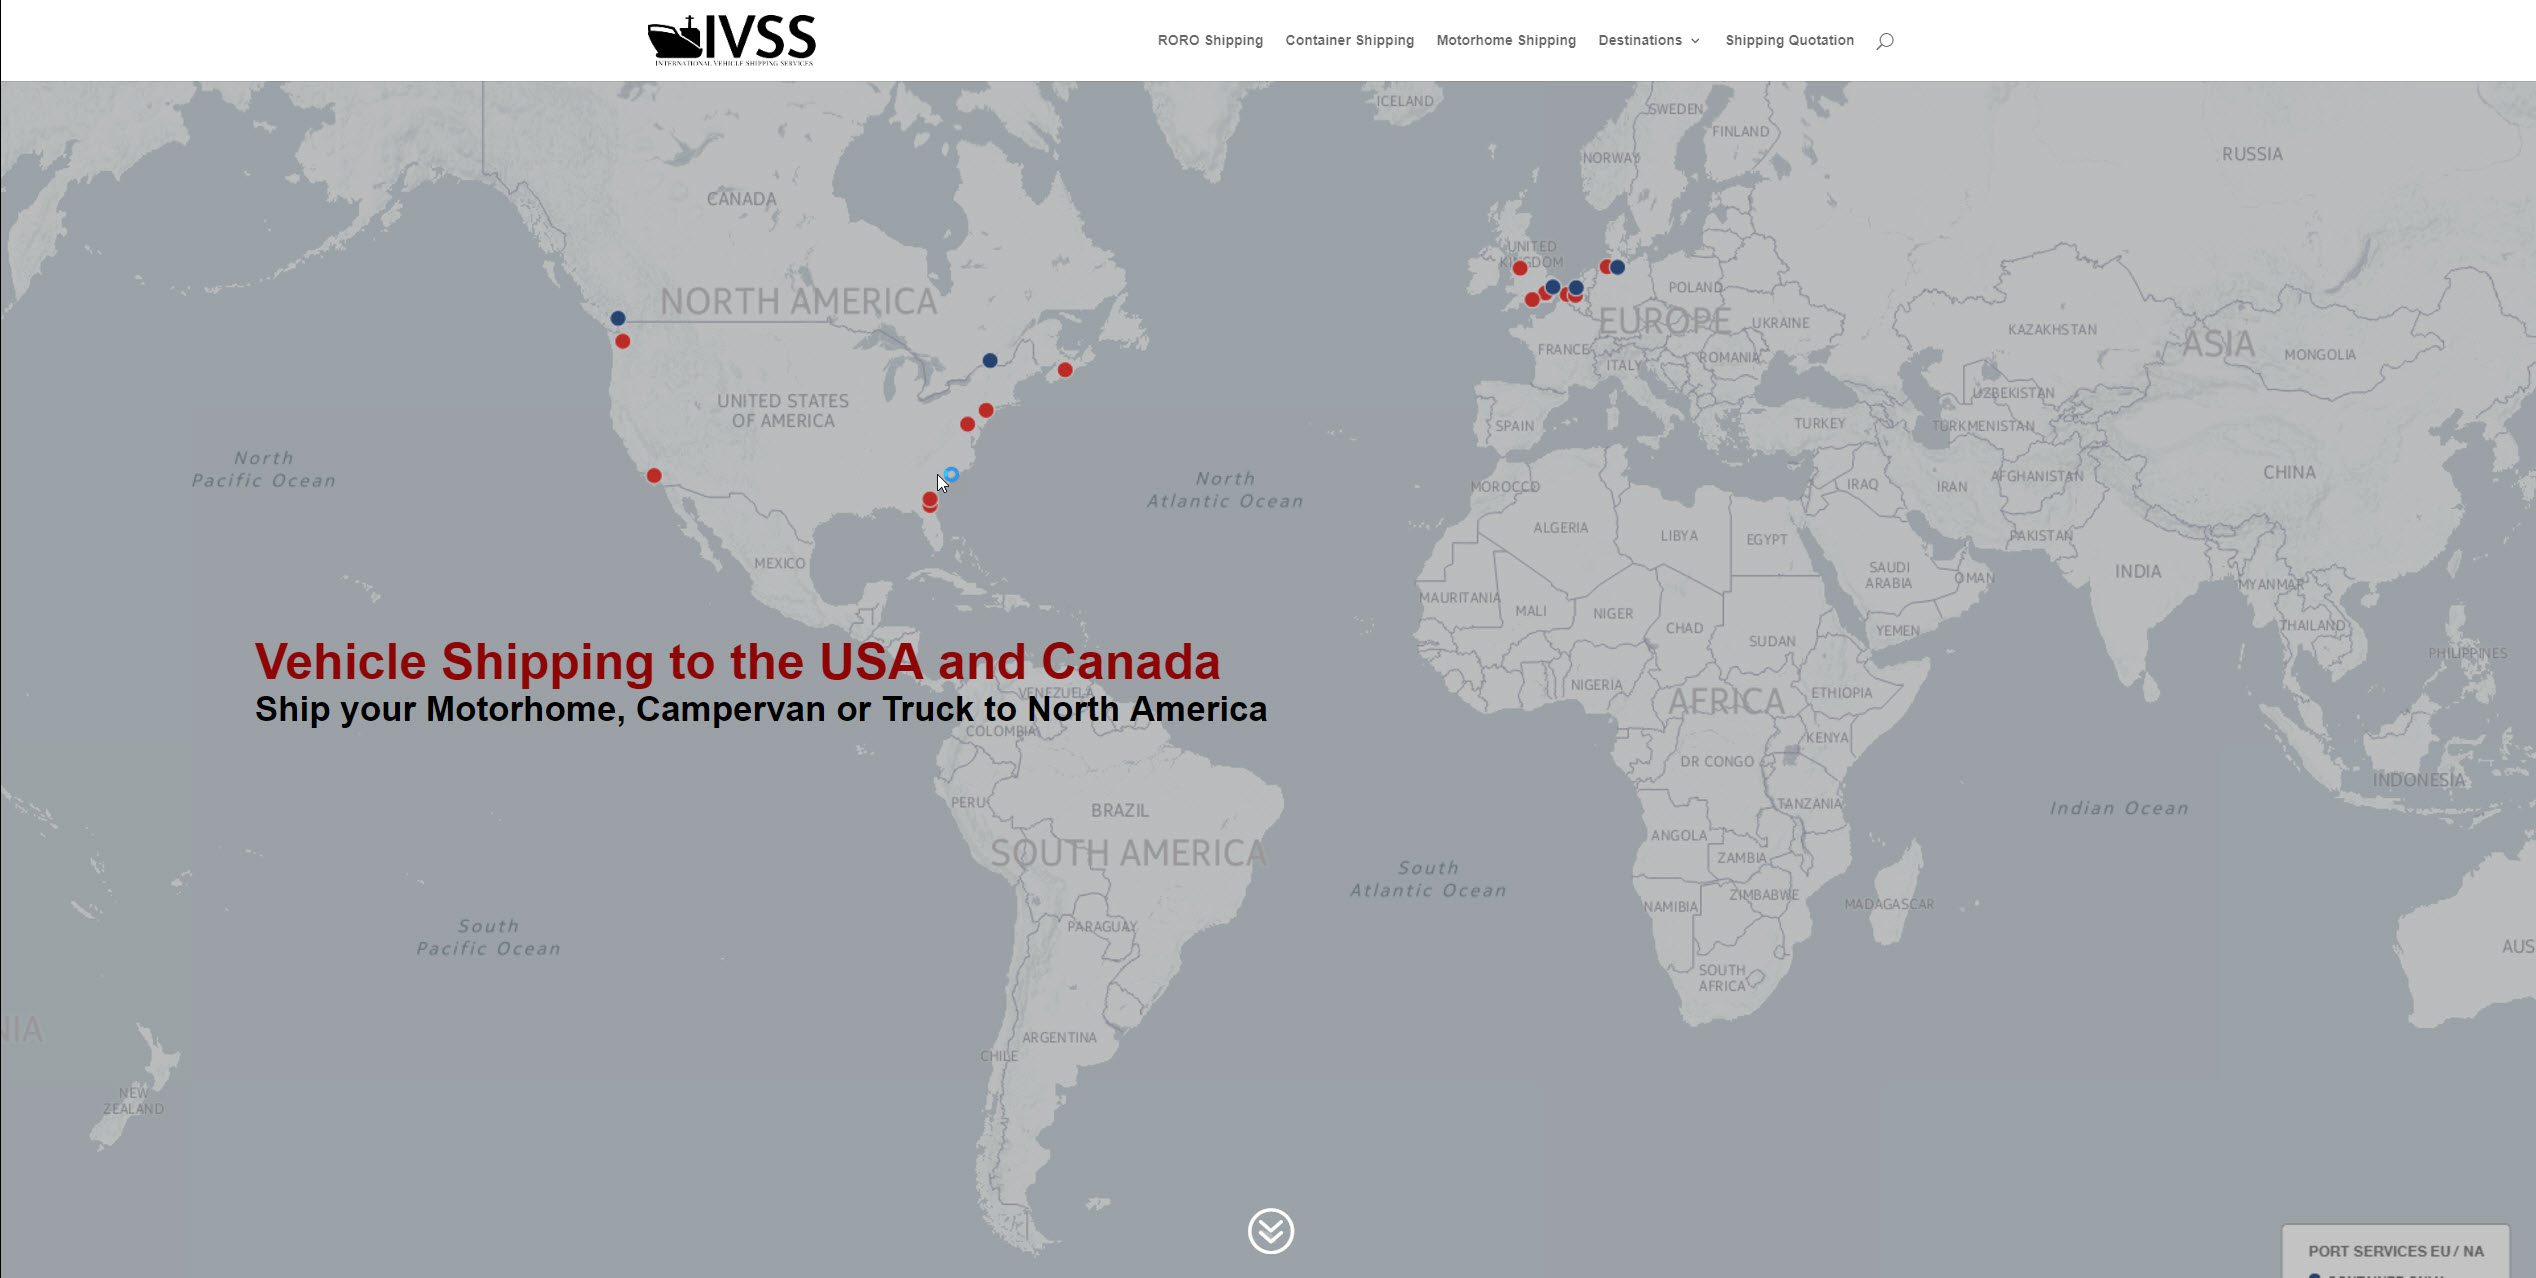 Vehicle Shipping from Europe to the USA & Canada - IVSS